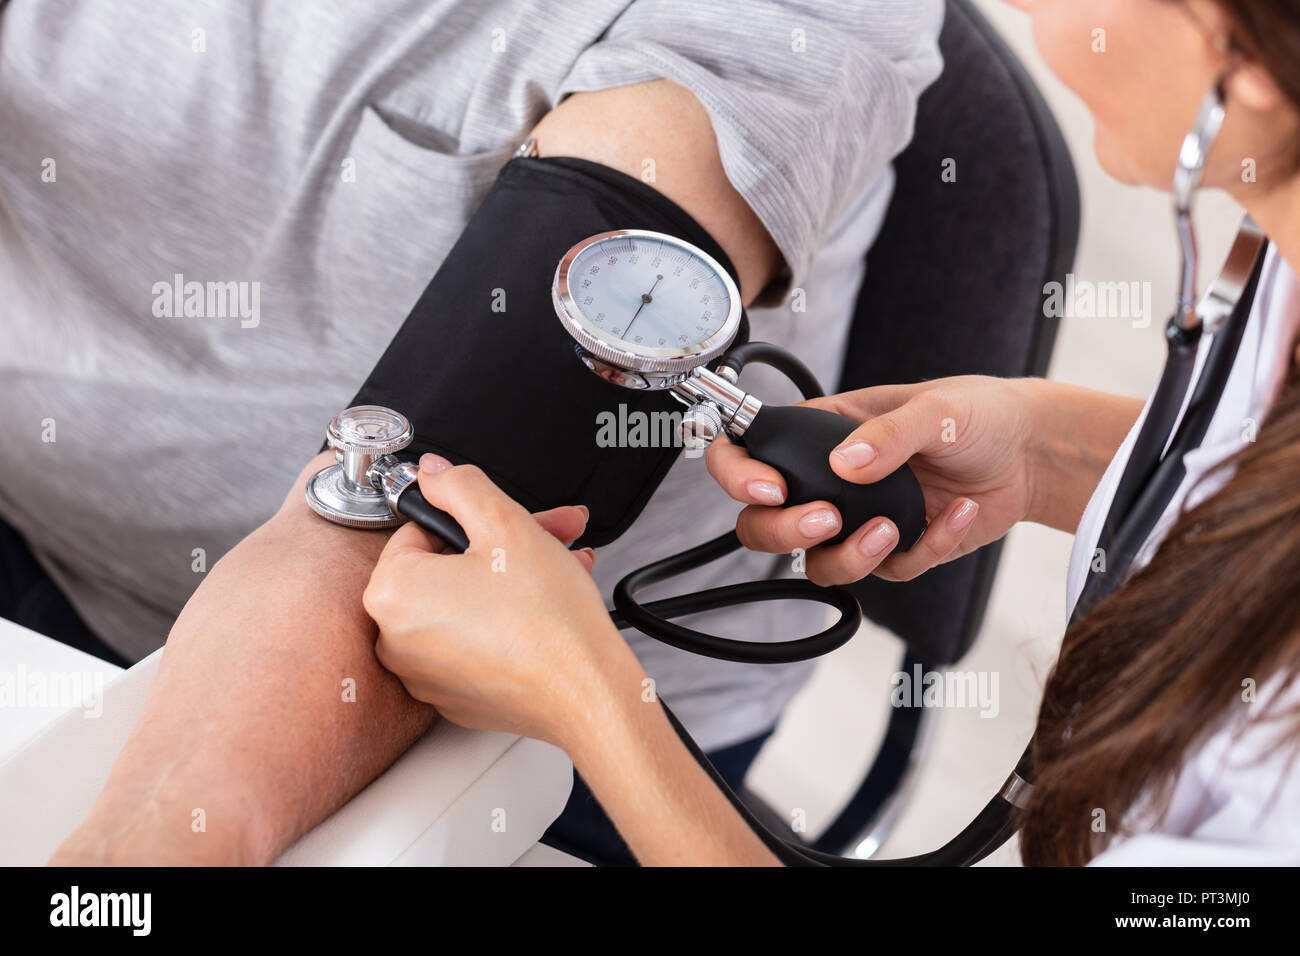 Close-up Of A Female Doctor's Hand Measuring Blood Pressure Of Patient - Stock Image